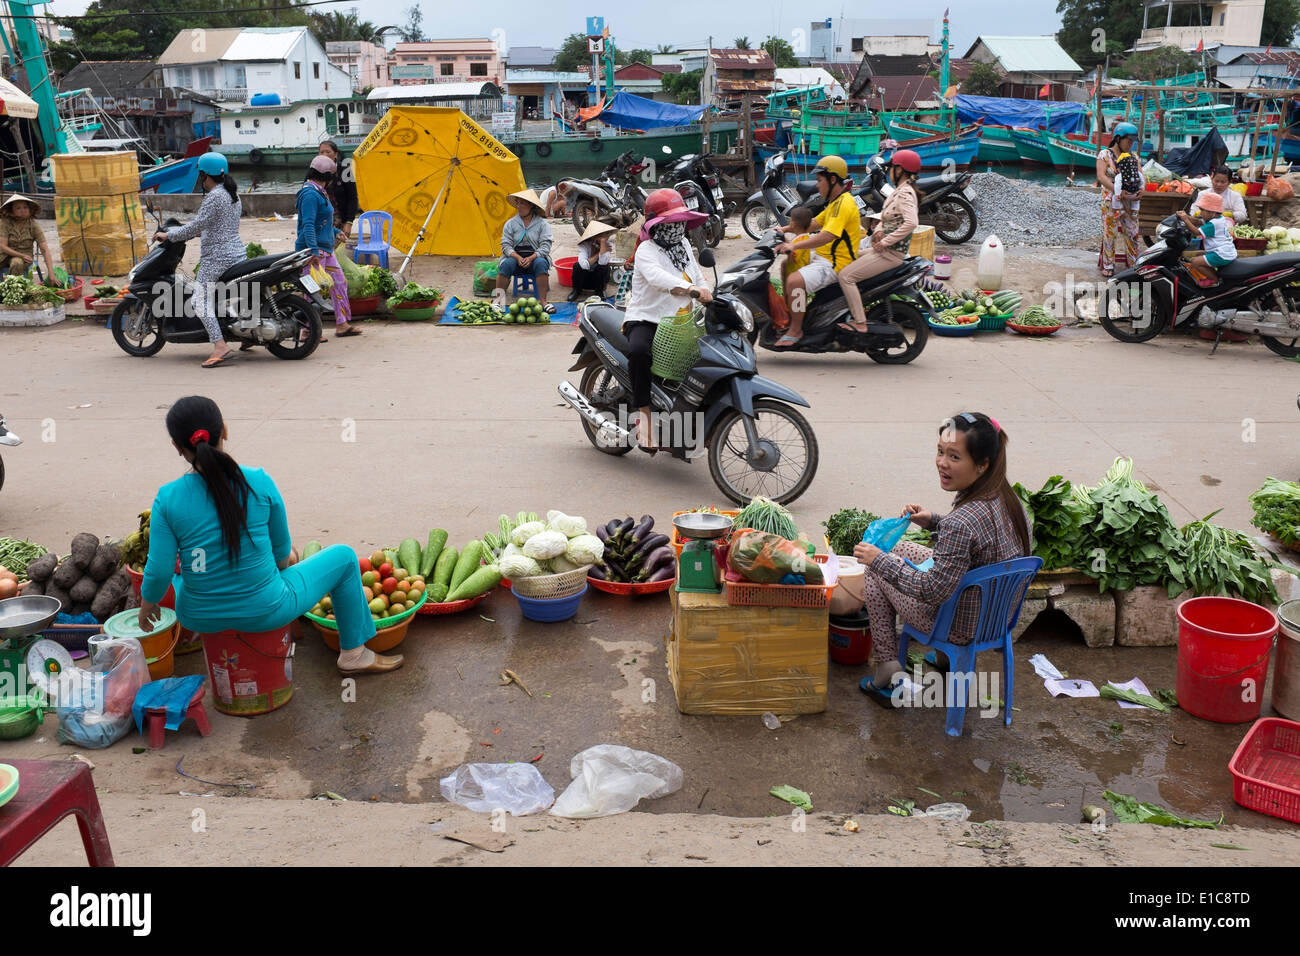 Food Market in Duong Dong Phu Quoc Island in Vietnam - Stock Image